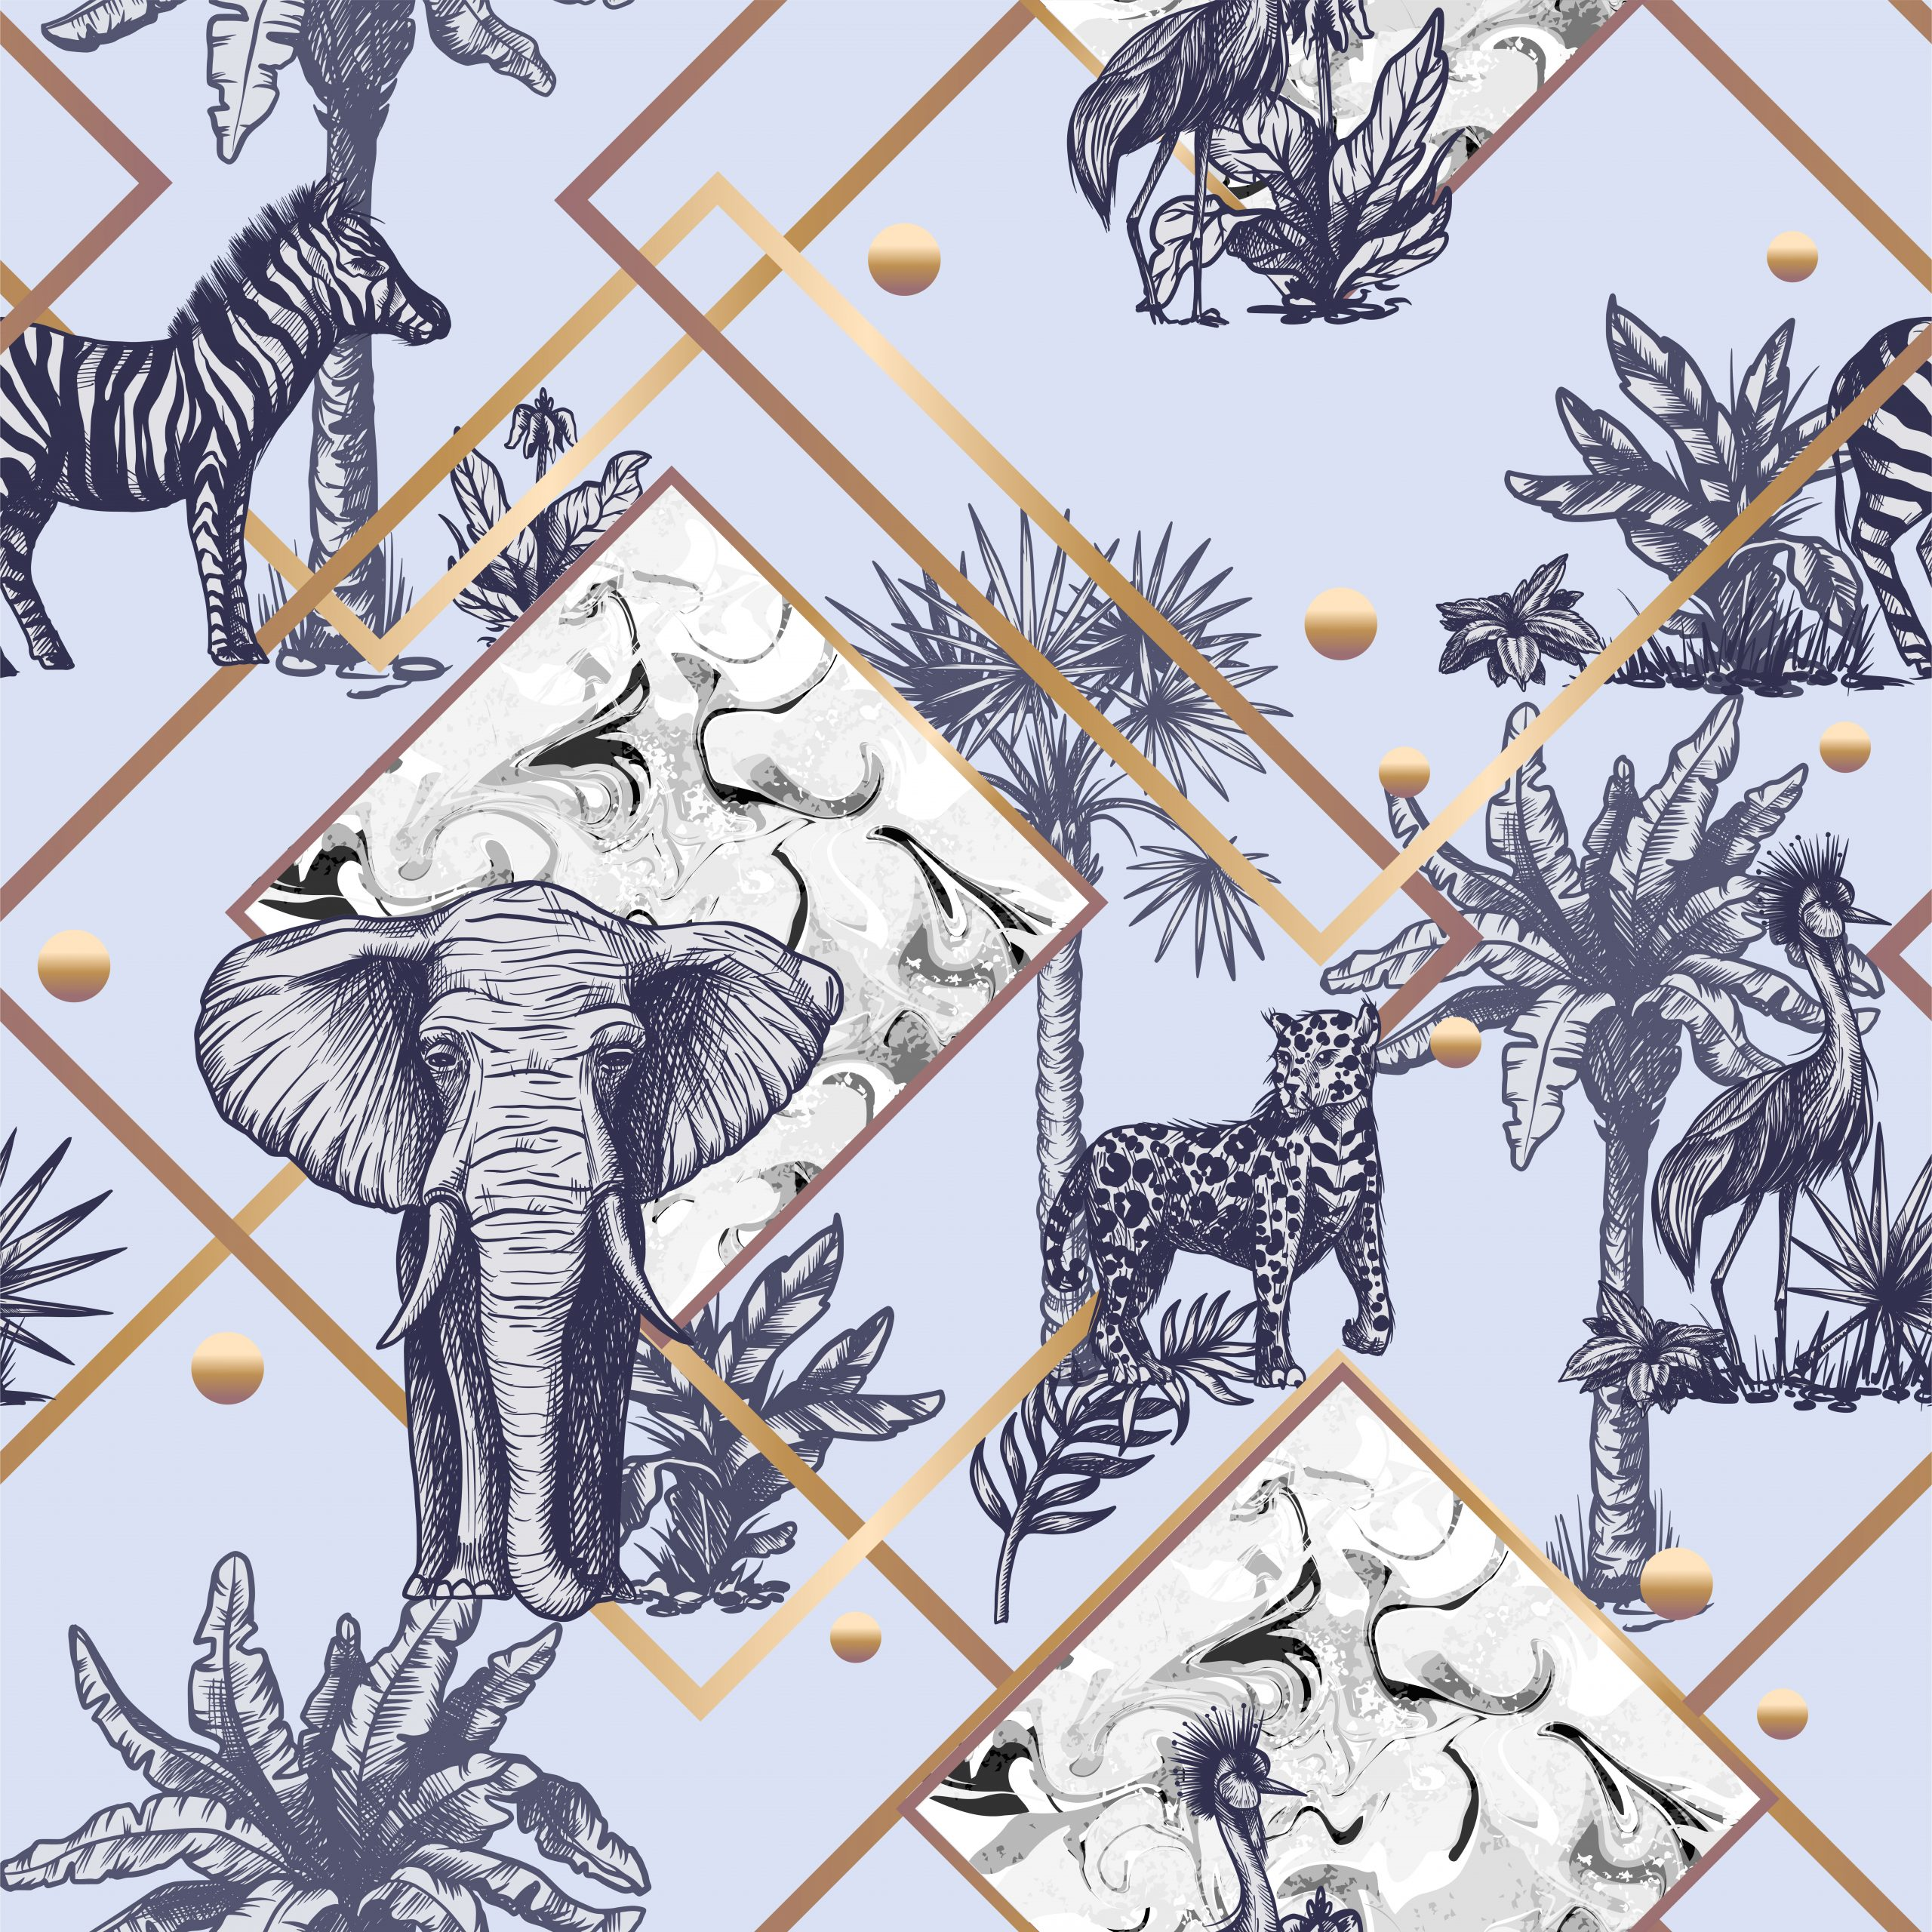 Seamless pattern with graphic tropical treees and jungle animals.